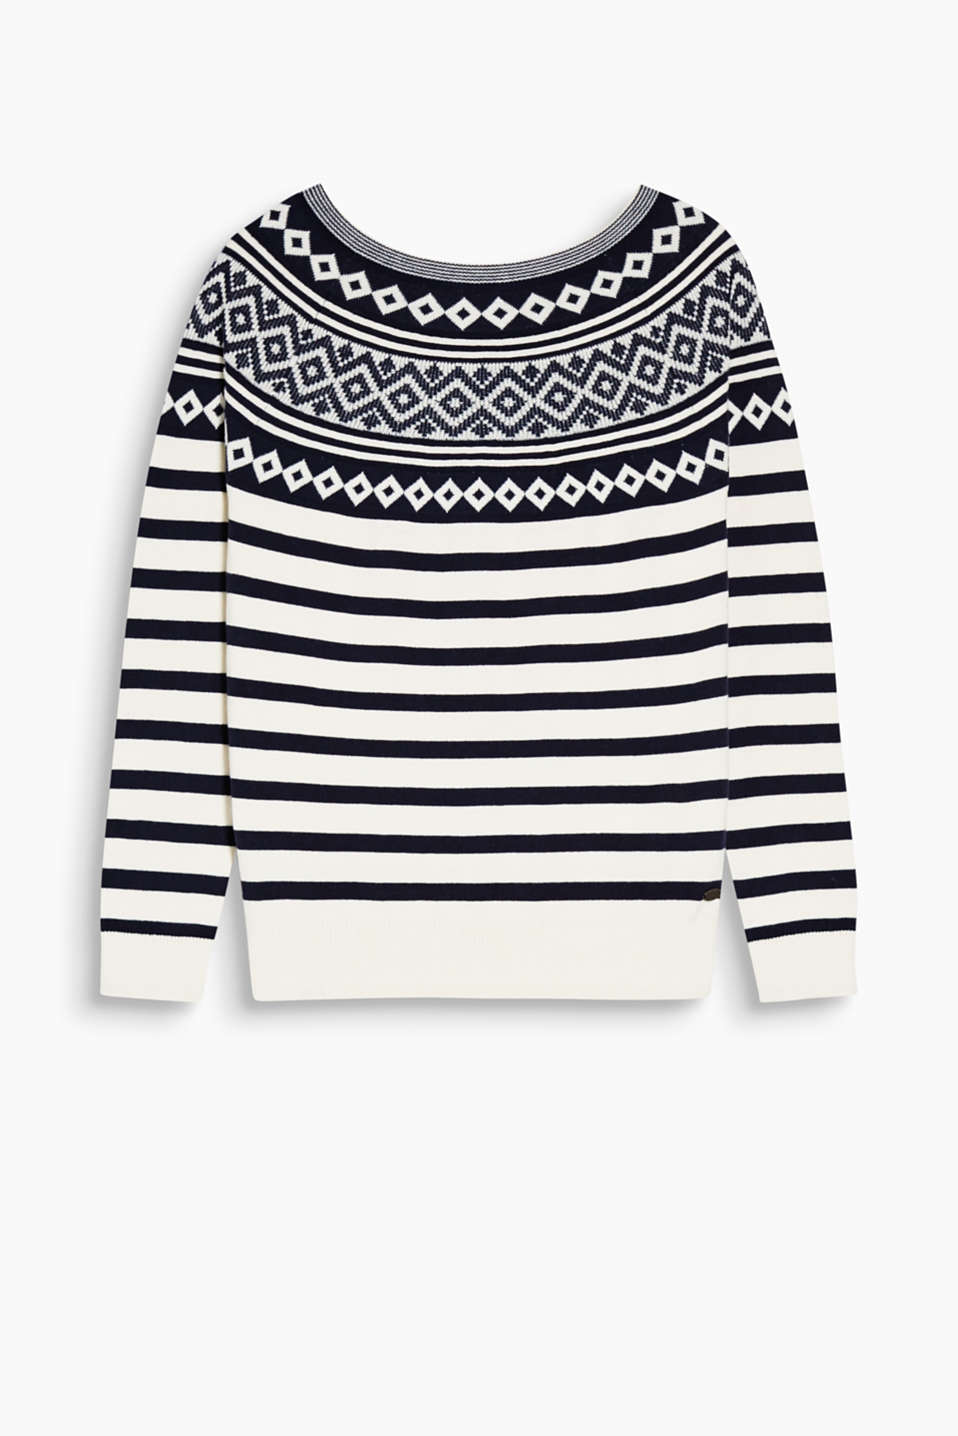 With different on-trend patterns: cotton jumper with Norwegian intarsia and classic stripes.